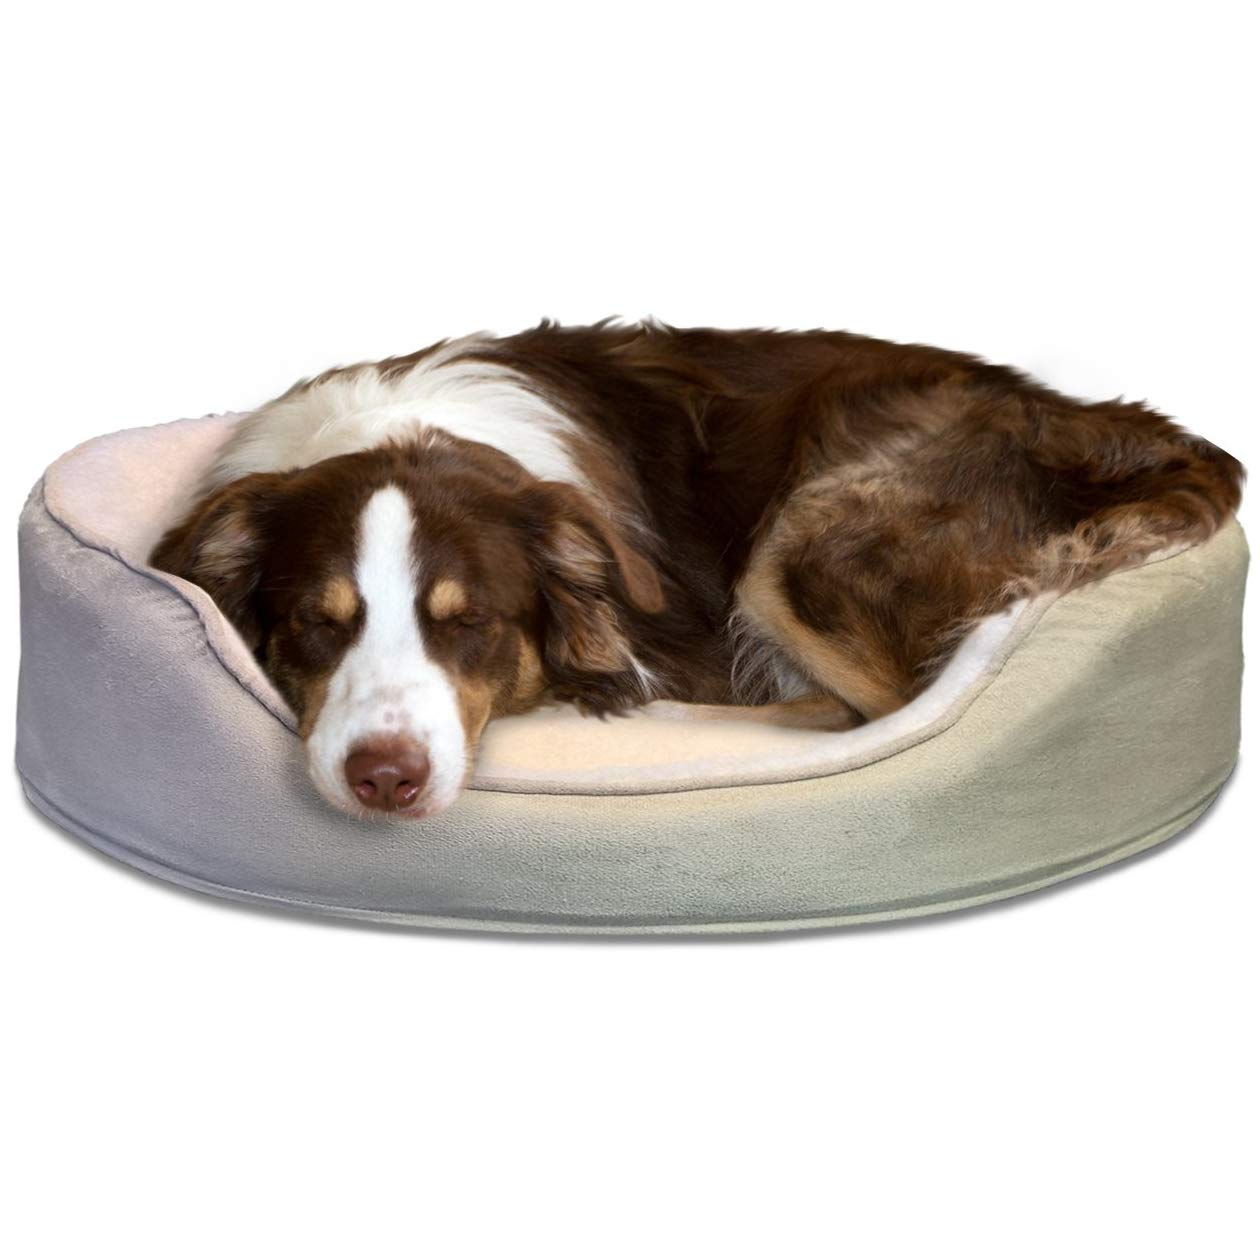 FurHaven Pet Dog Bed   Orthopedic Oval Lounger Pet Bed for Dogs & Cats, Clay, Large